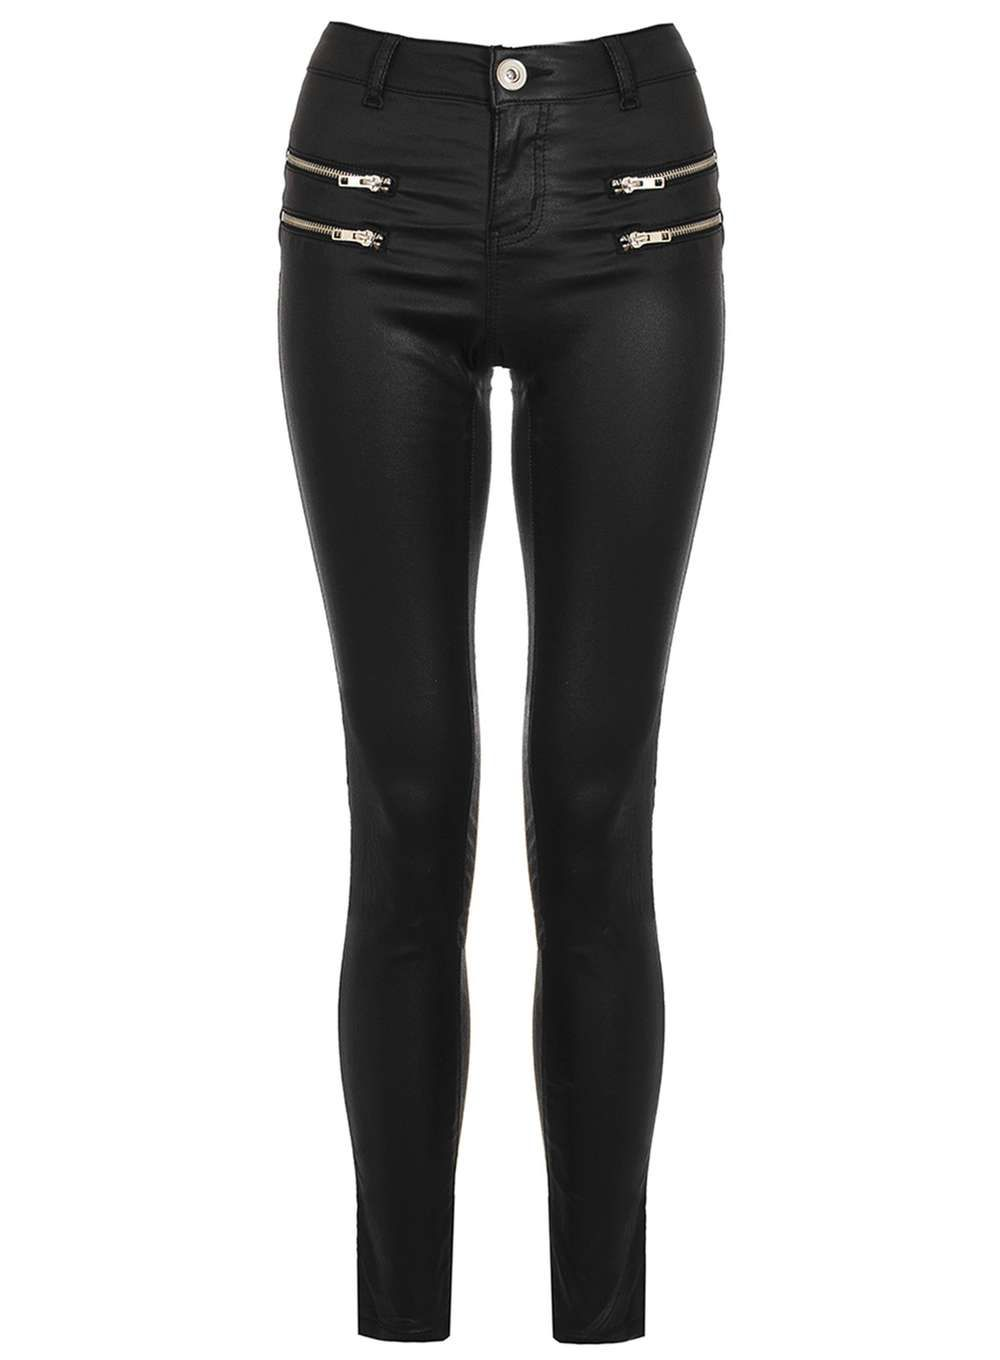 Leather trousers quiz